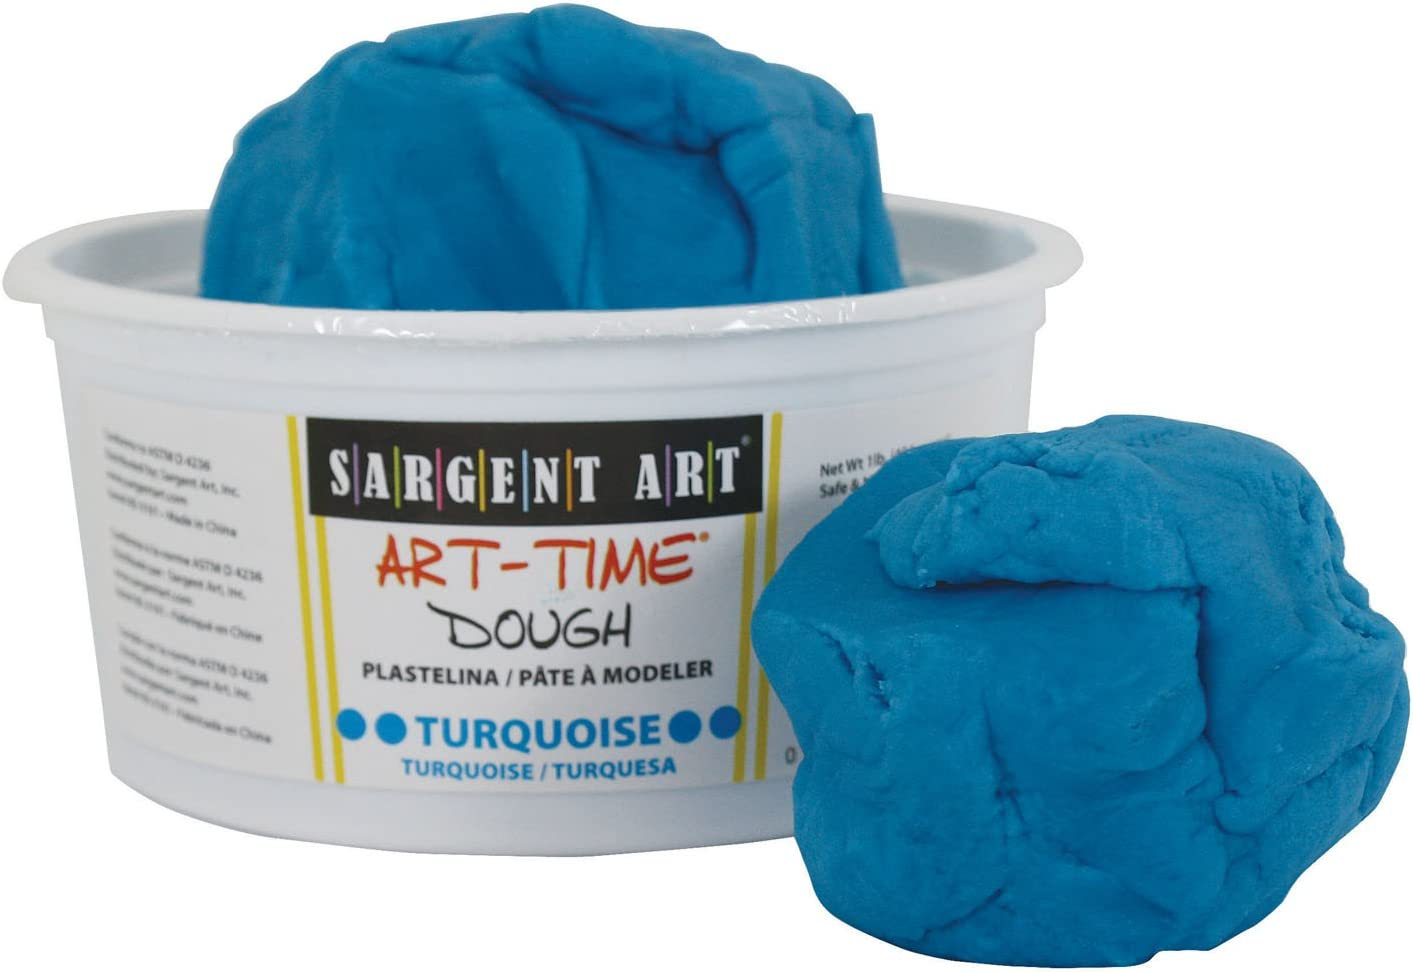 Sargent Branded goods Art Long-awaited 85-3161 1-Pound Turquoise Dough Art-Time